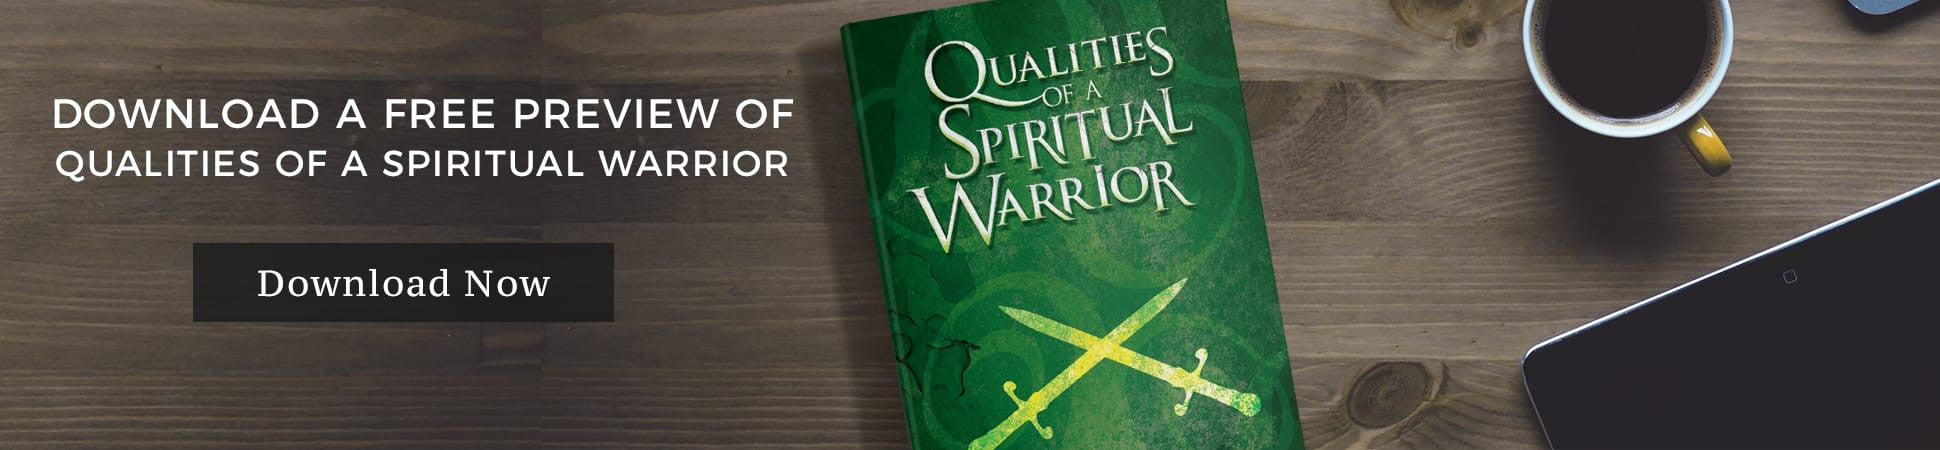 Qualities of a Spiritual Warrior FREE preview